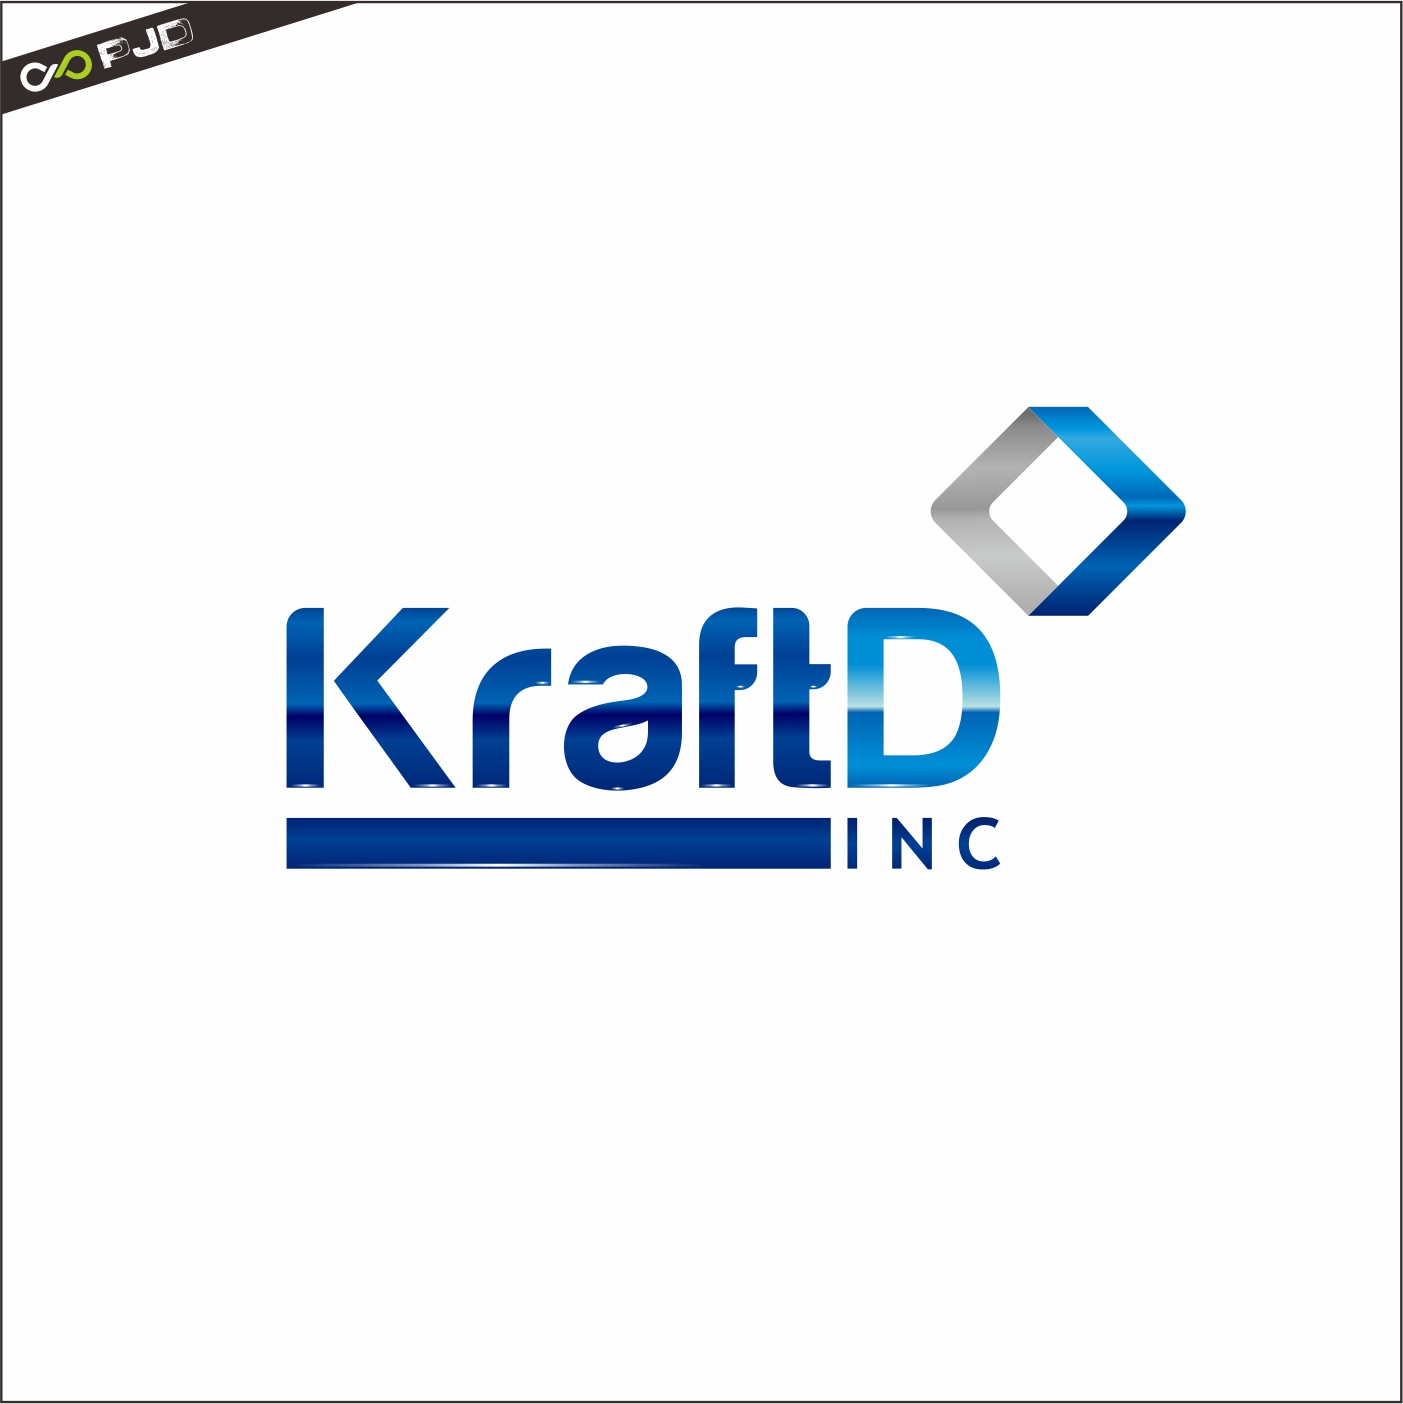 Logo Design by PJD - Entry No. 474 in the Logo Design Contest Unique Logo Design Wanted for Kraft D Inc.